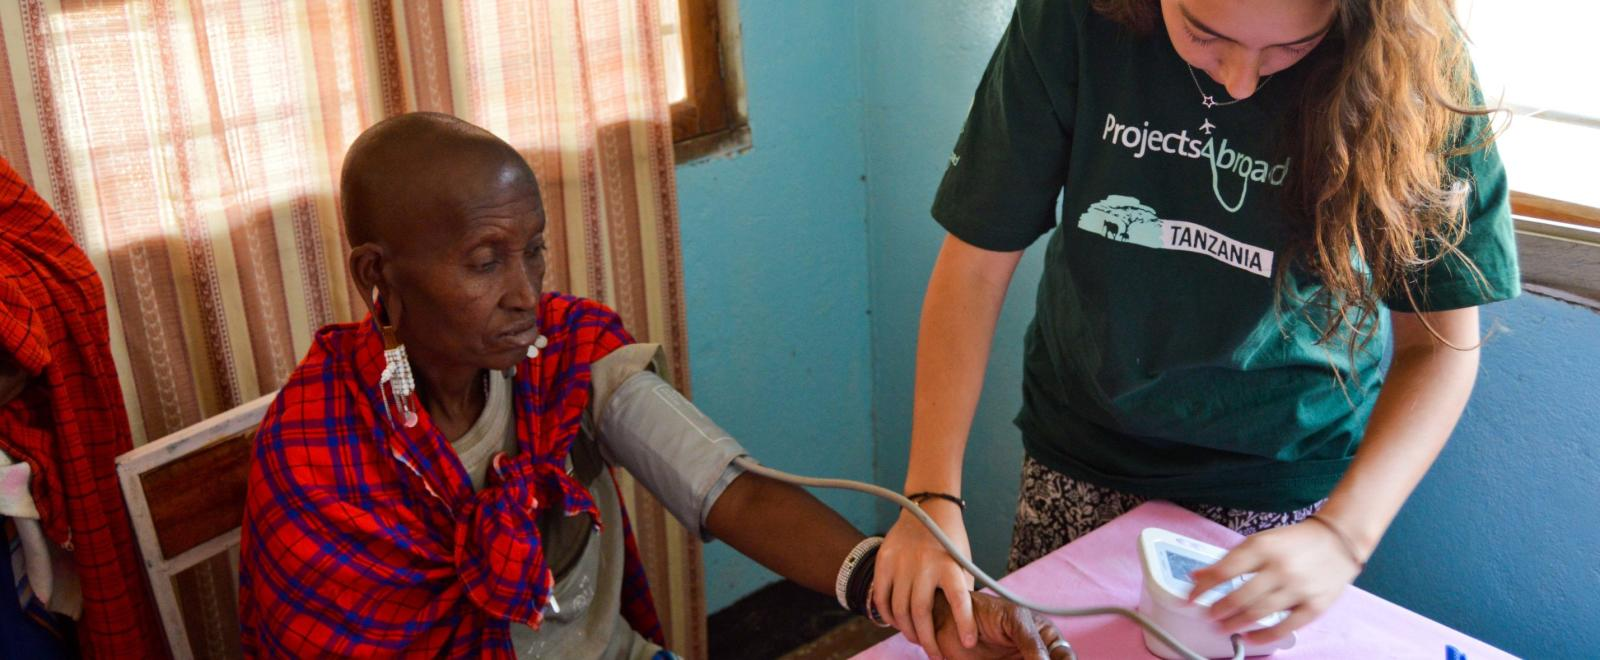 A medical volunteer measures a woman's blood pressure during a community healthcare outreach in Tanzania.